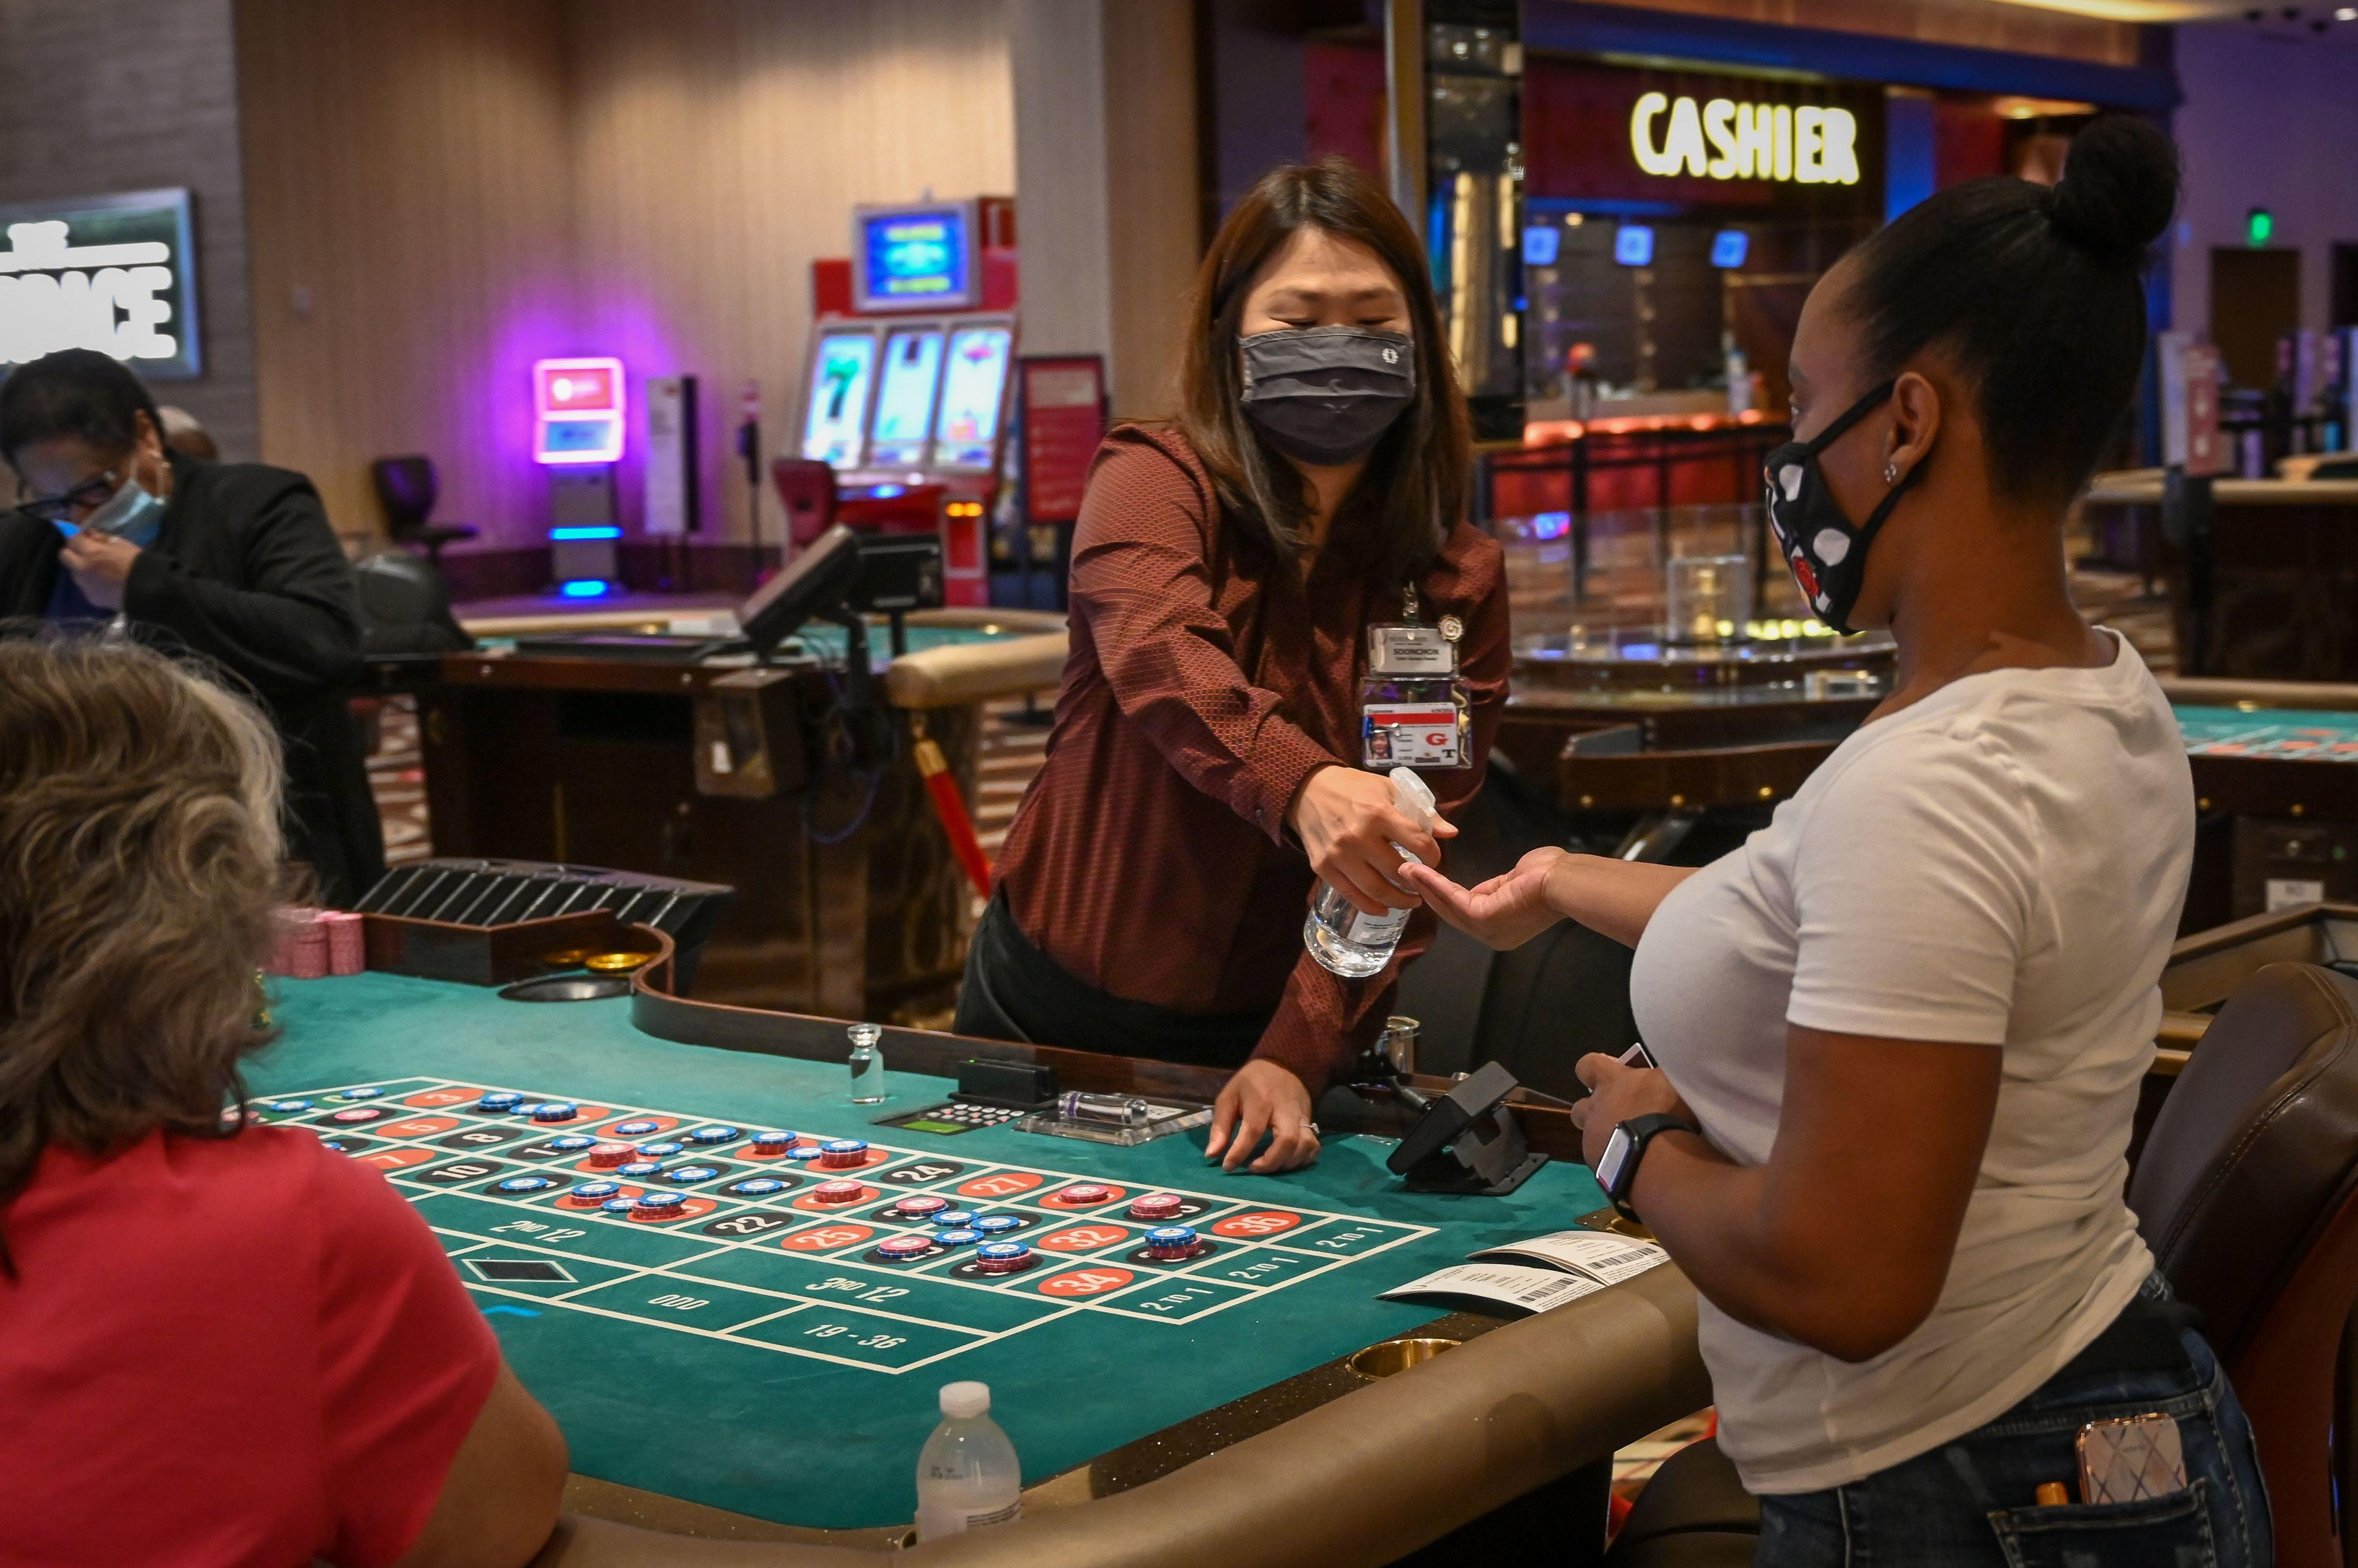 Maryland casino revenues beginning to recover, but workers question whether it's worth it